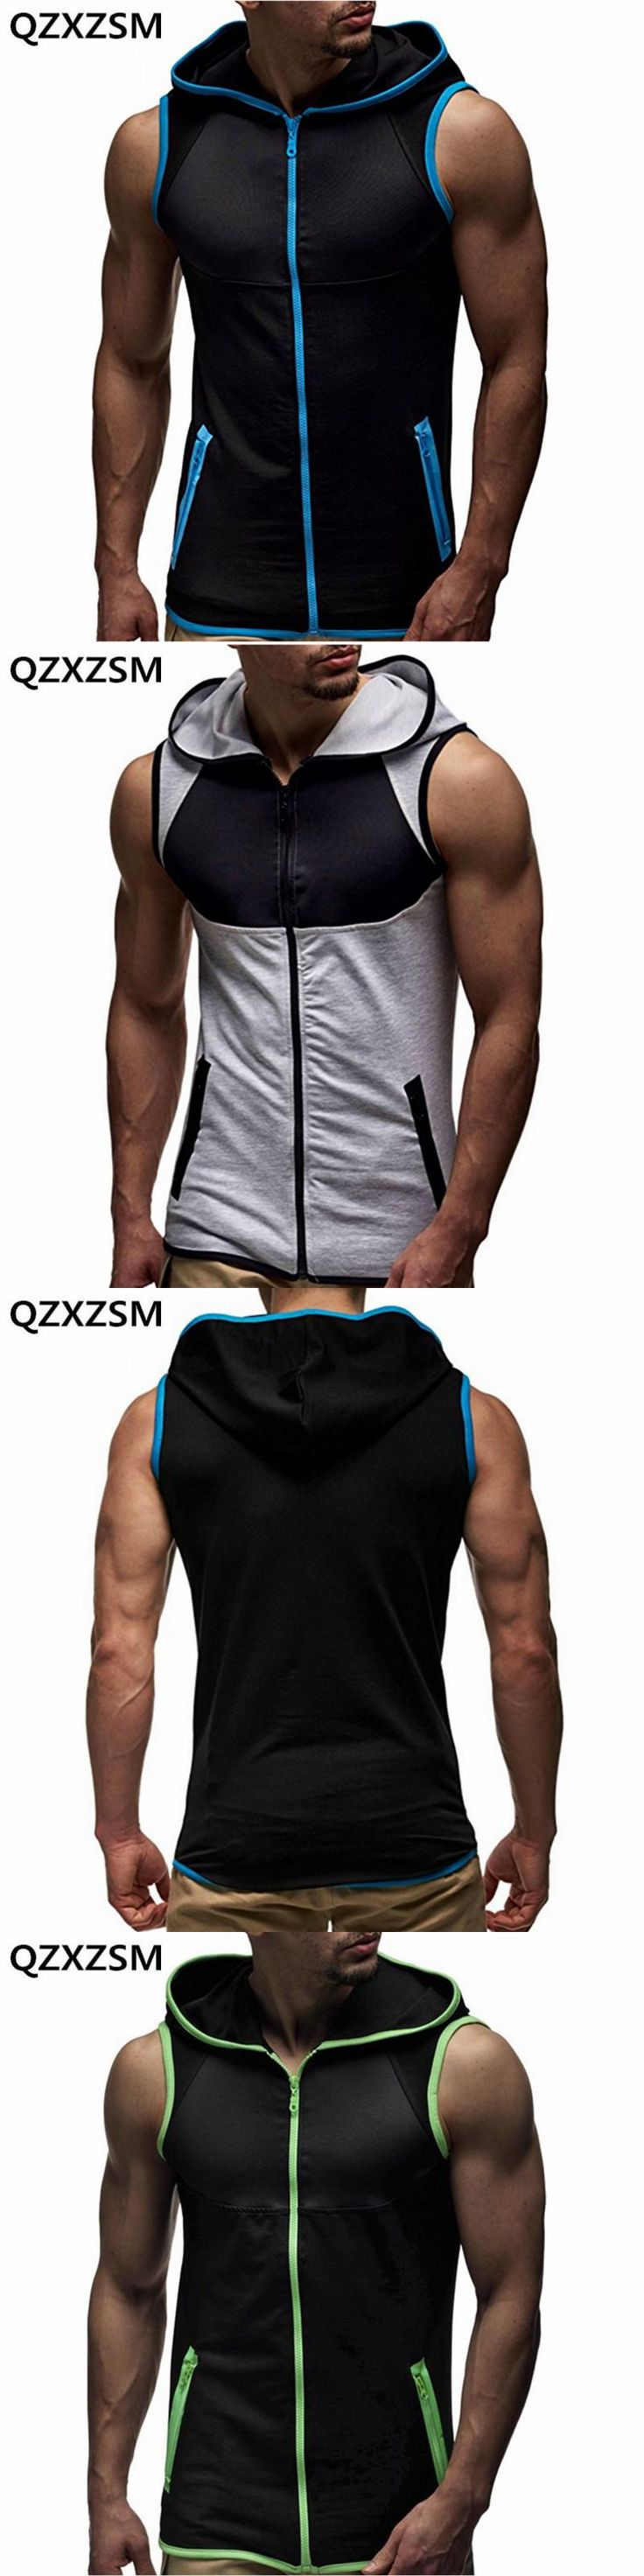 QZXZSM 2017 new Men Tank Tops with Hoody Fitness Mens Bodybuilding Clothing Crossfit Workout Top Activewear Sleeveless Hoodies